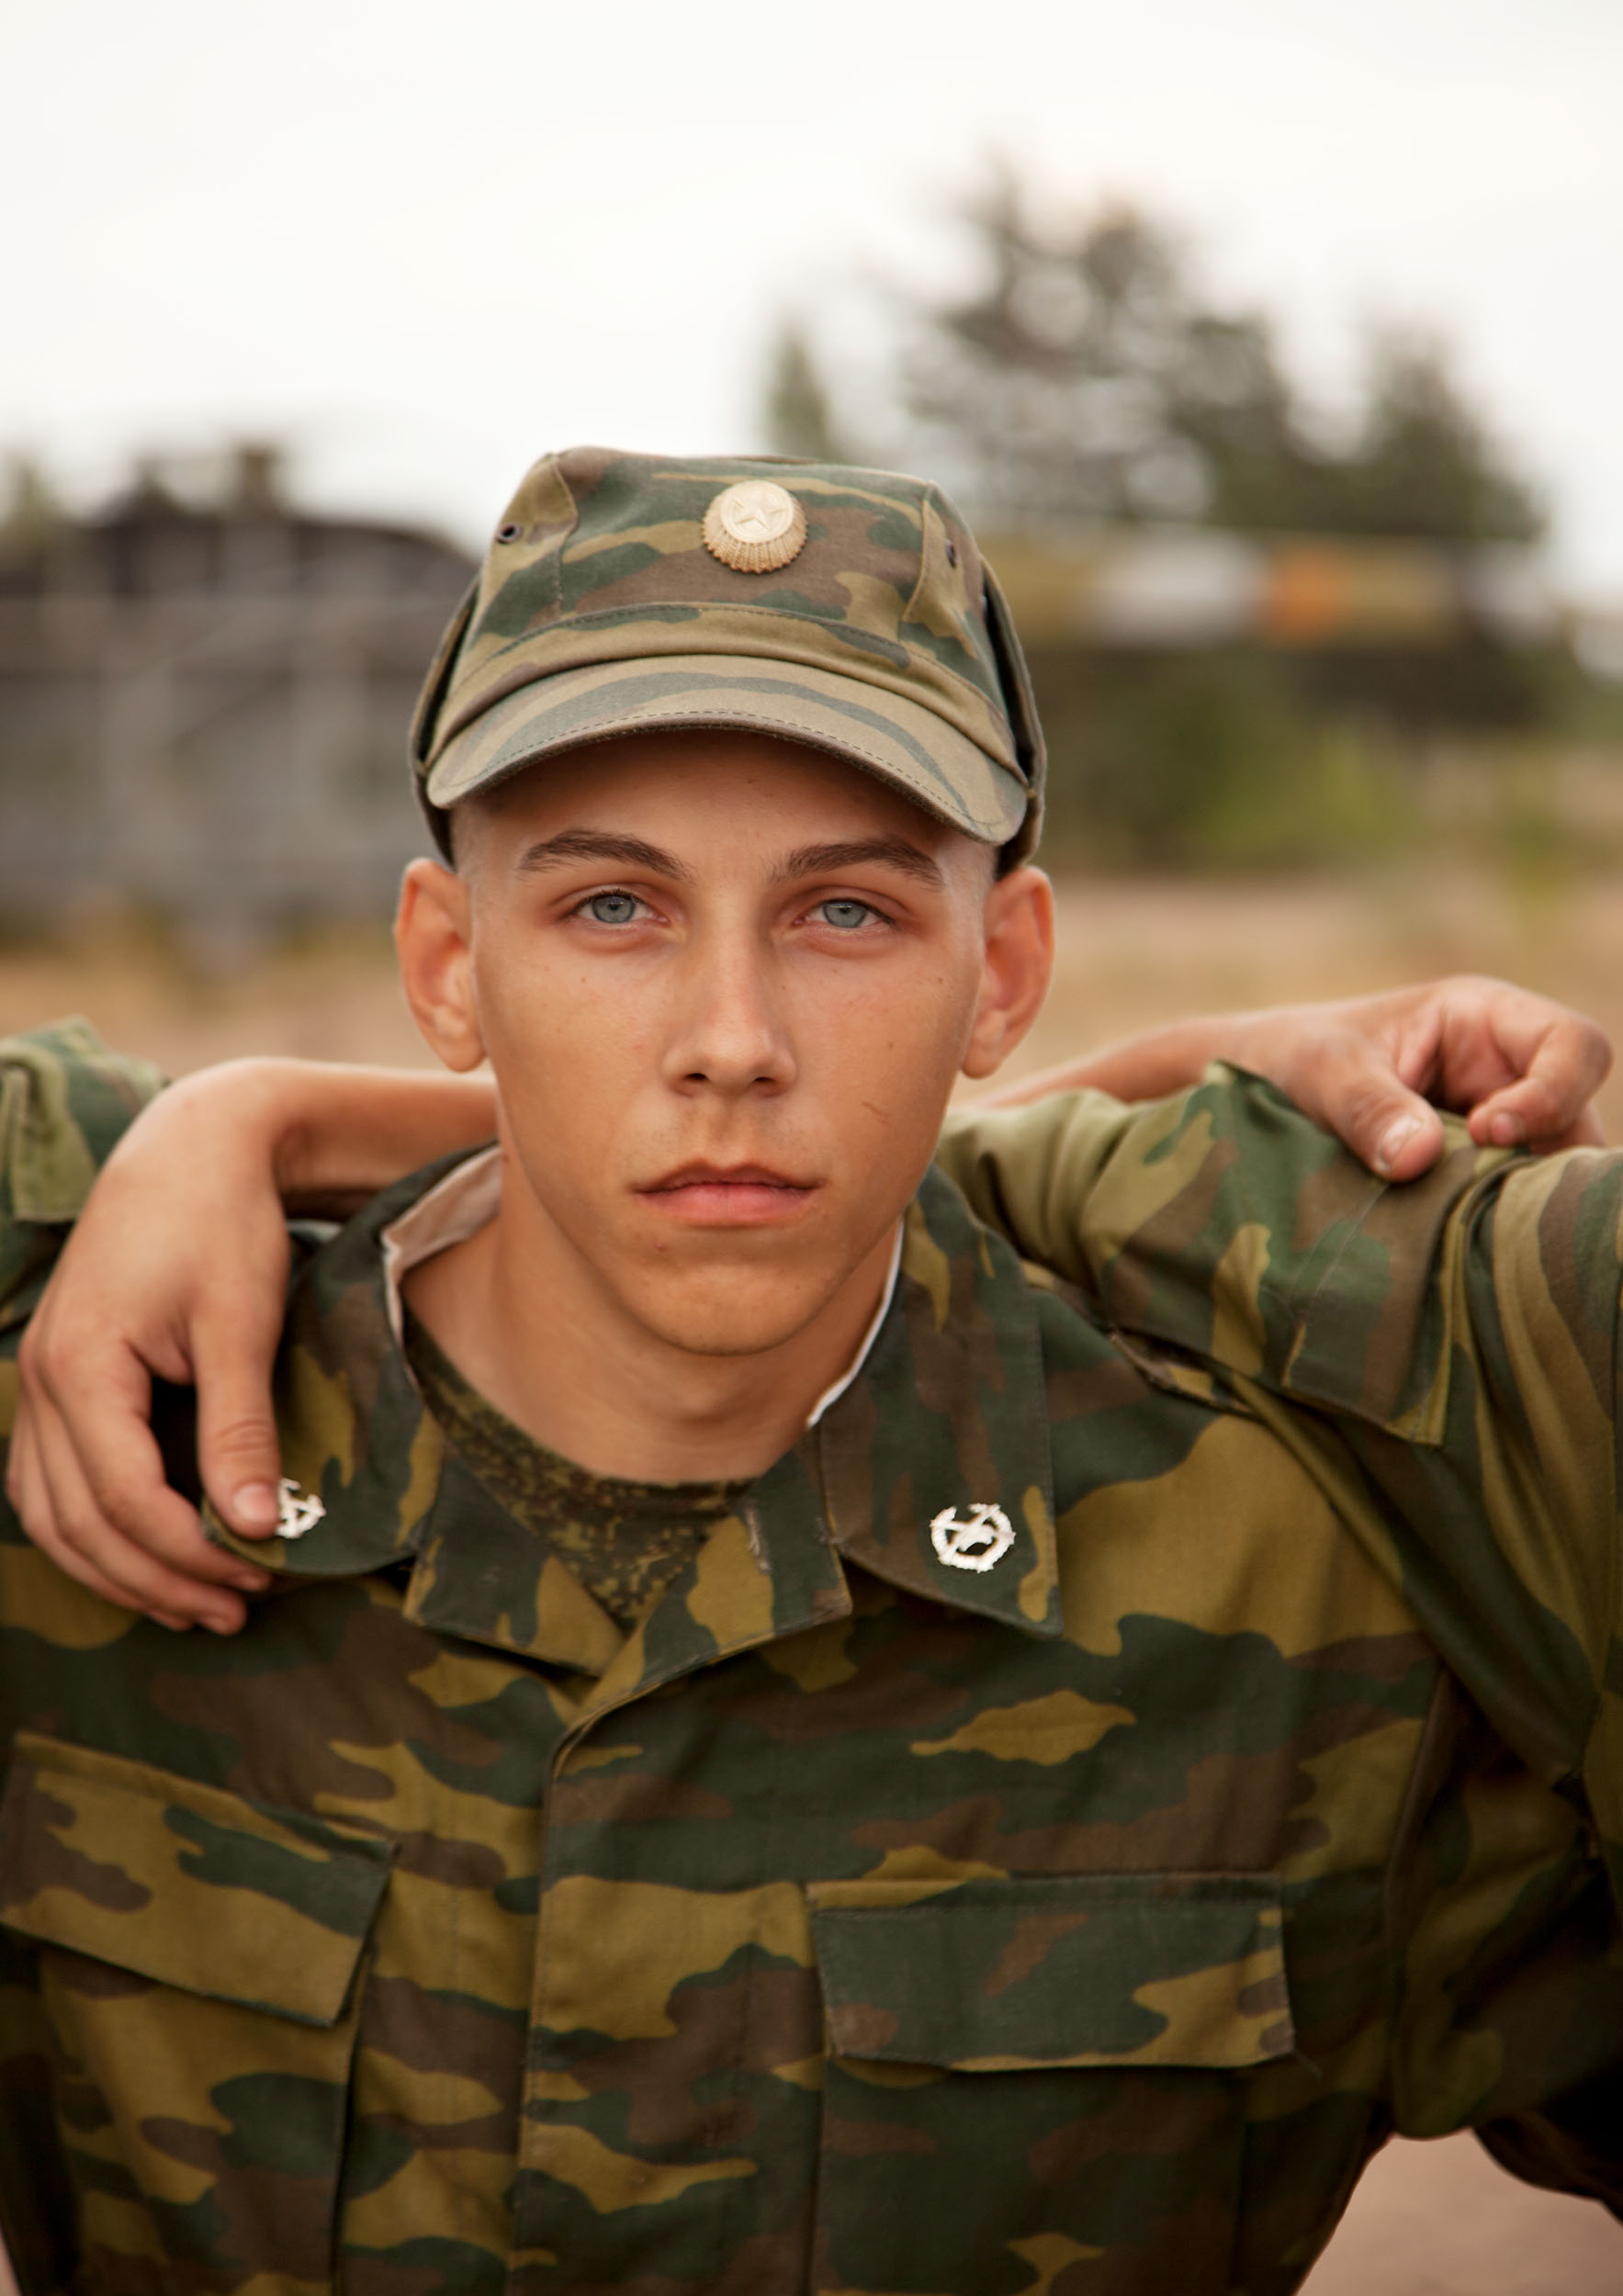 Young Soldier 2  2011, archival pigment print 134 x 95 cm / 53 x 37.5 in. Edition of 5